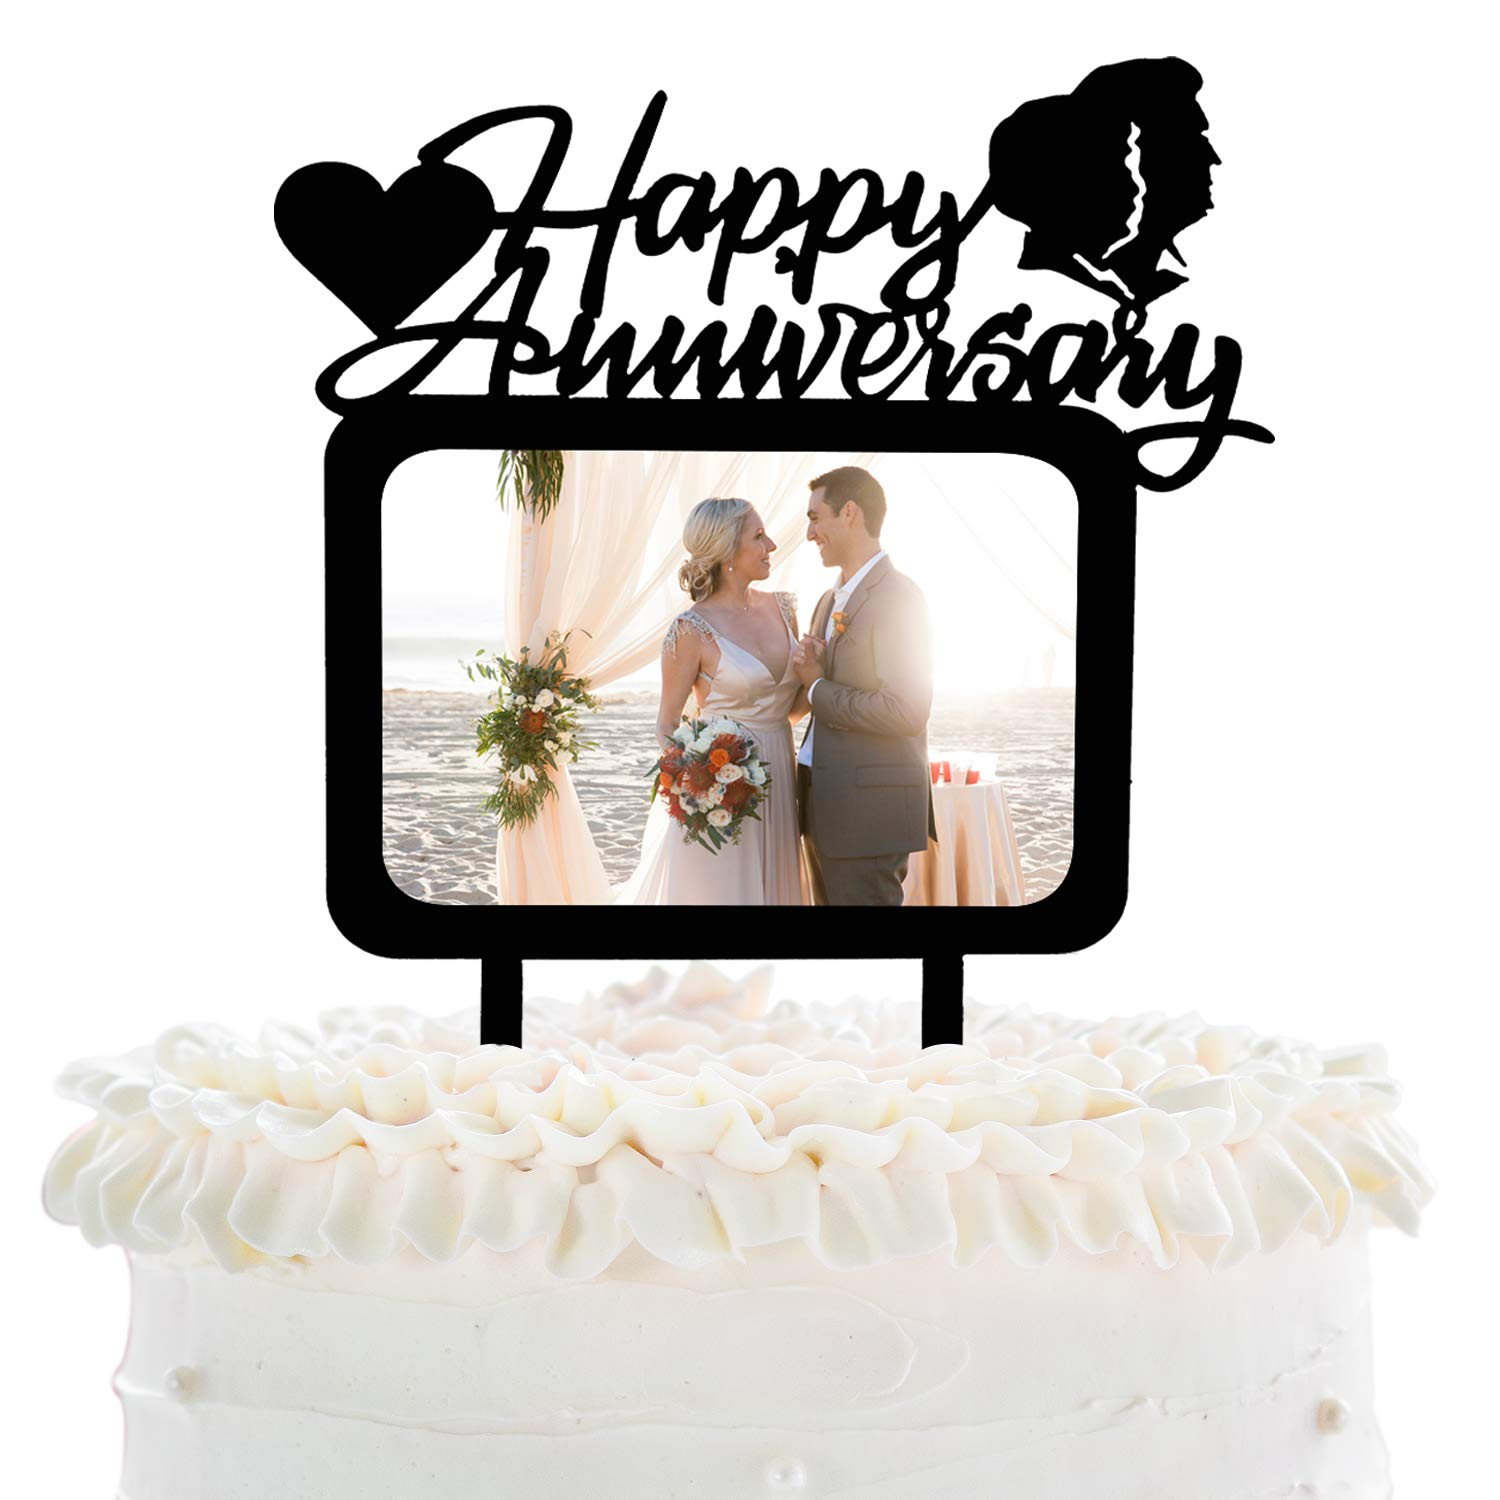 Happy Anniversary Cake Topper With Photo Frame Cake Picks Decor Bridal Shower Wedding Anniversary Party Supplies Silhouette Groom Bride Lovely Heart Decorations Amazon In Grocery Gourmet Foods